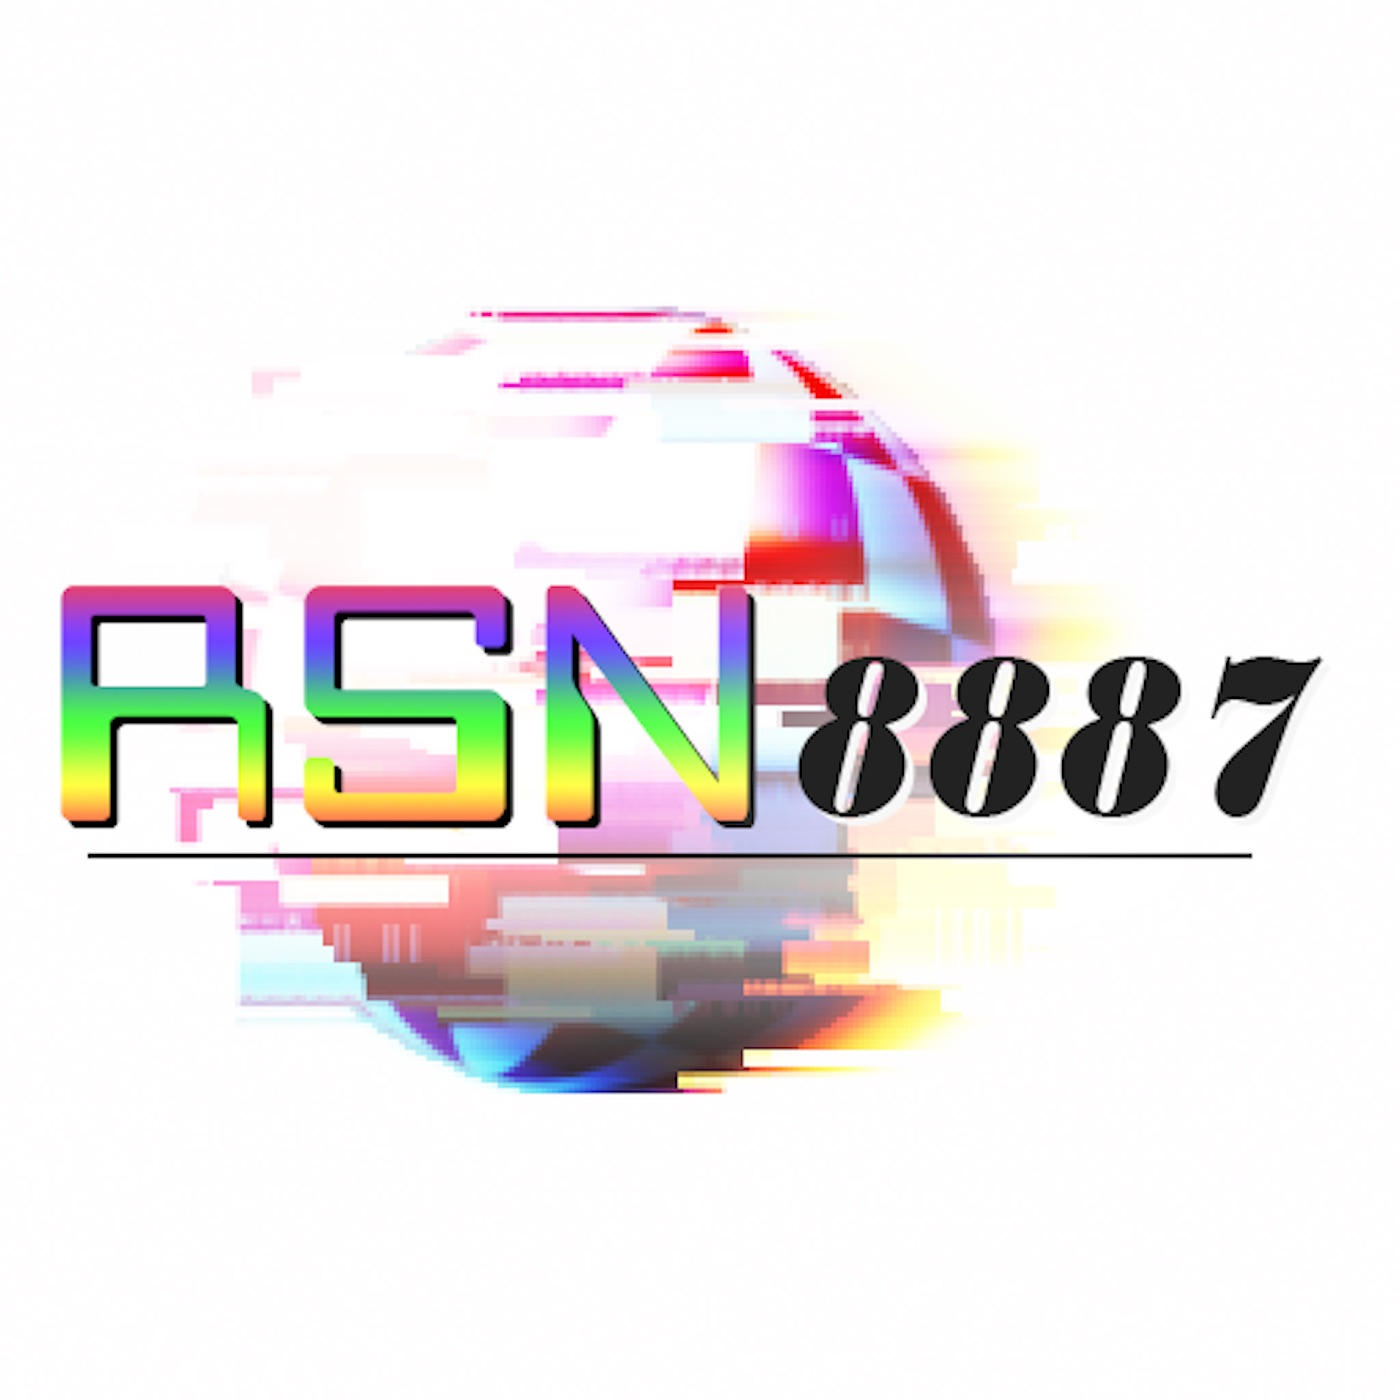 https://www.patreon.com/rsn8887